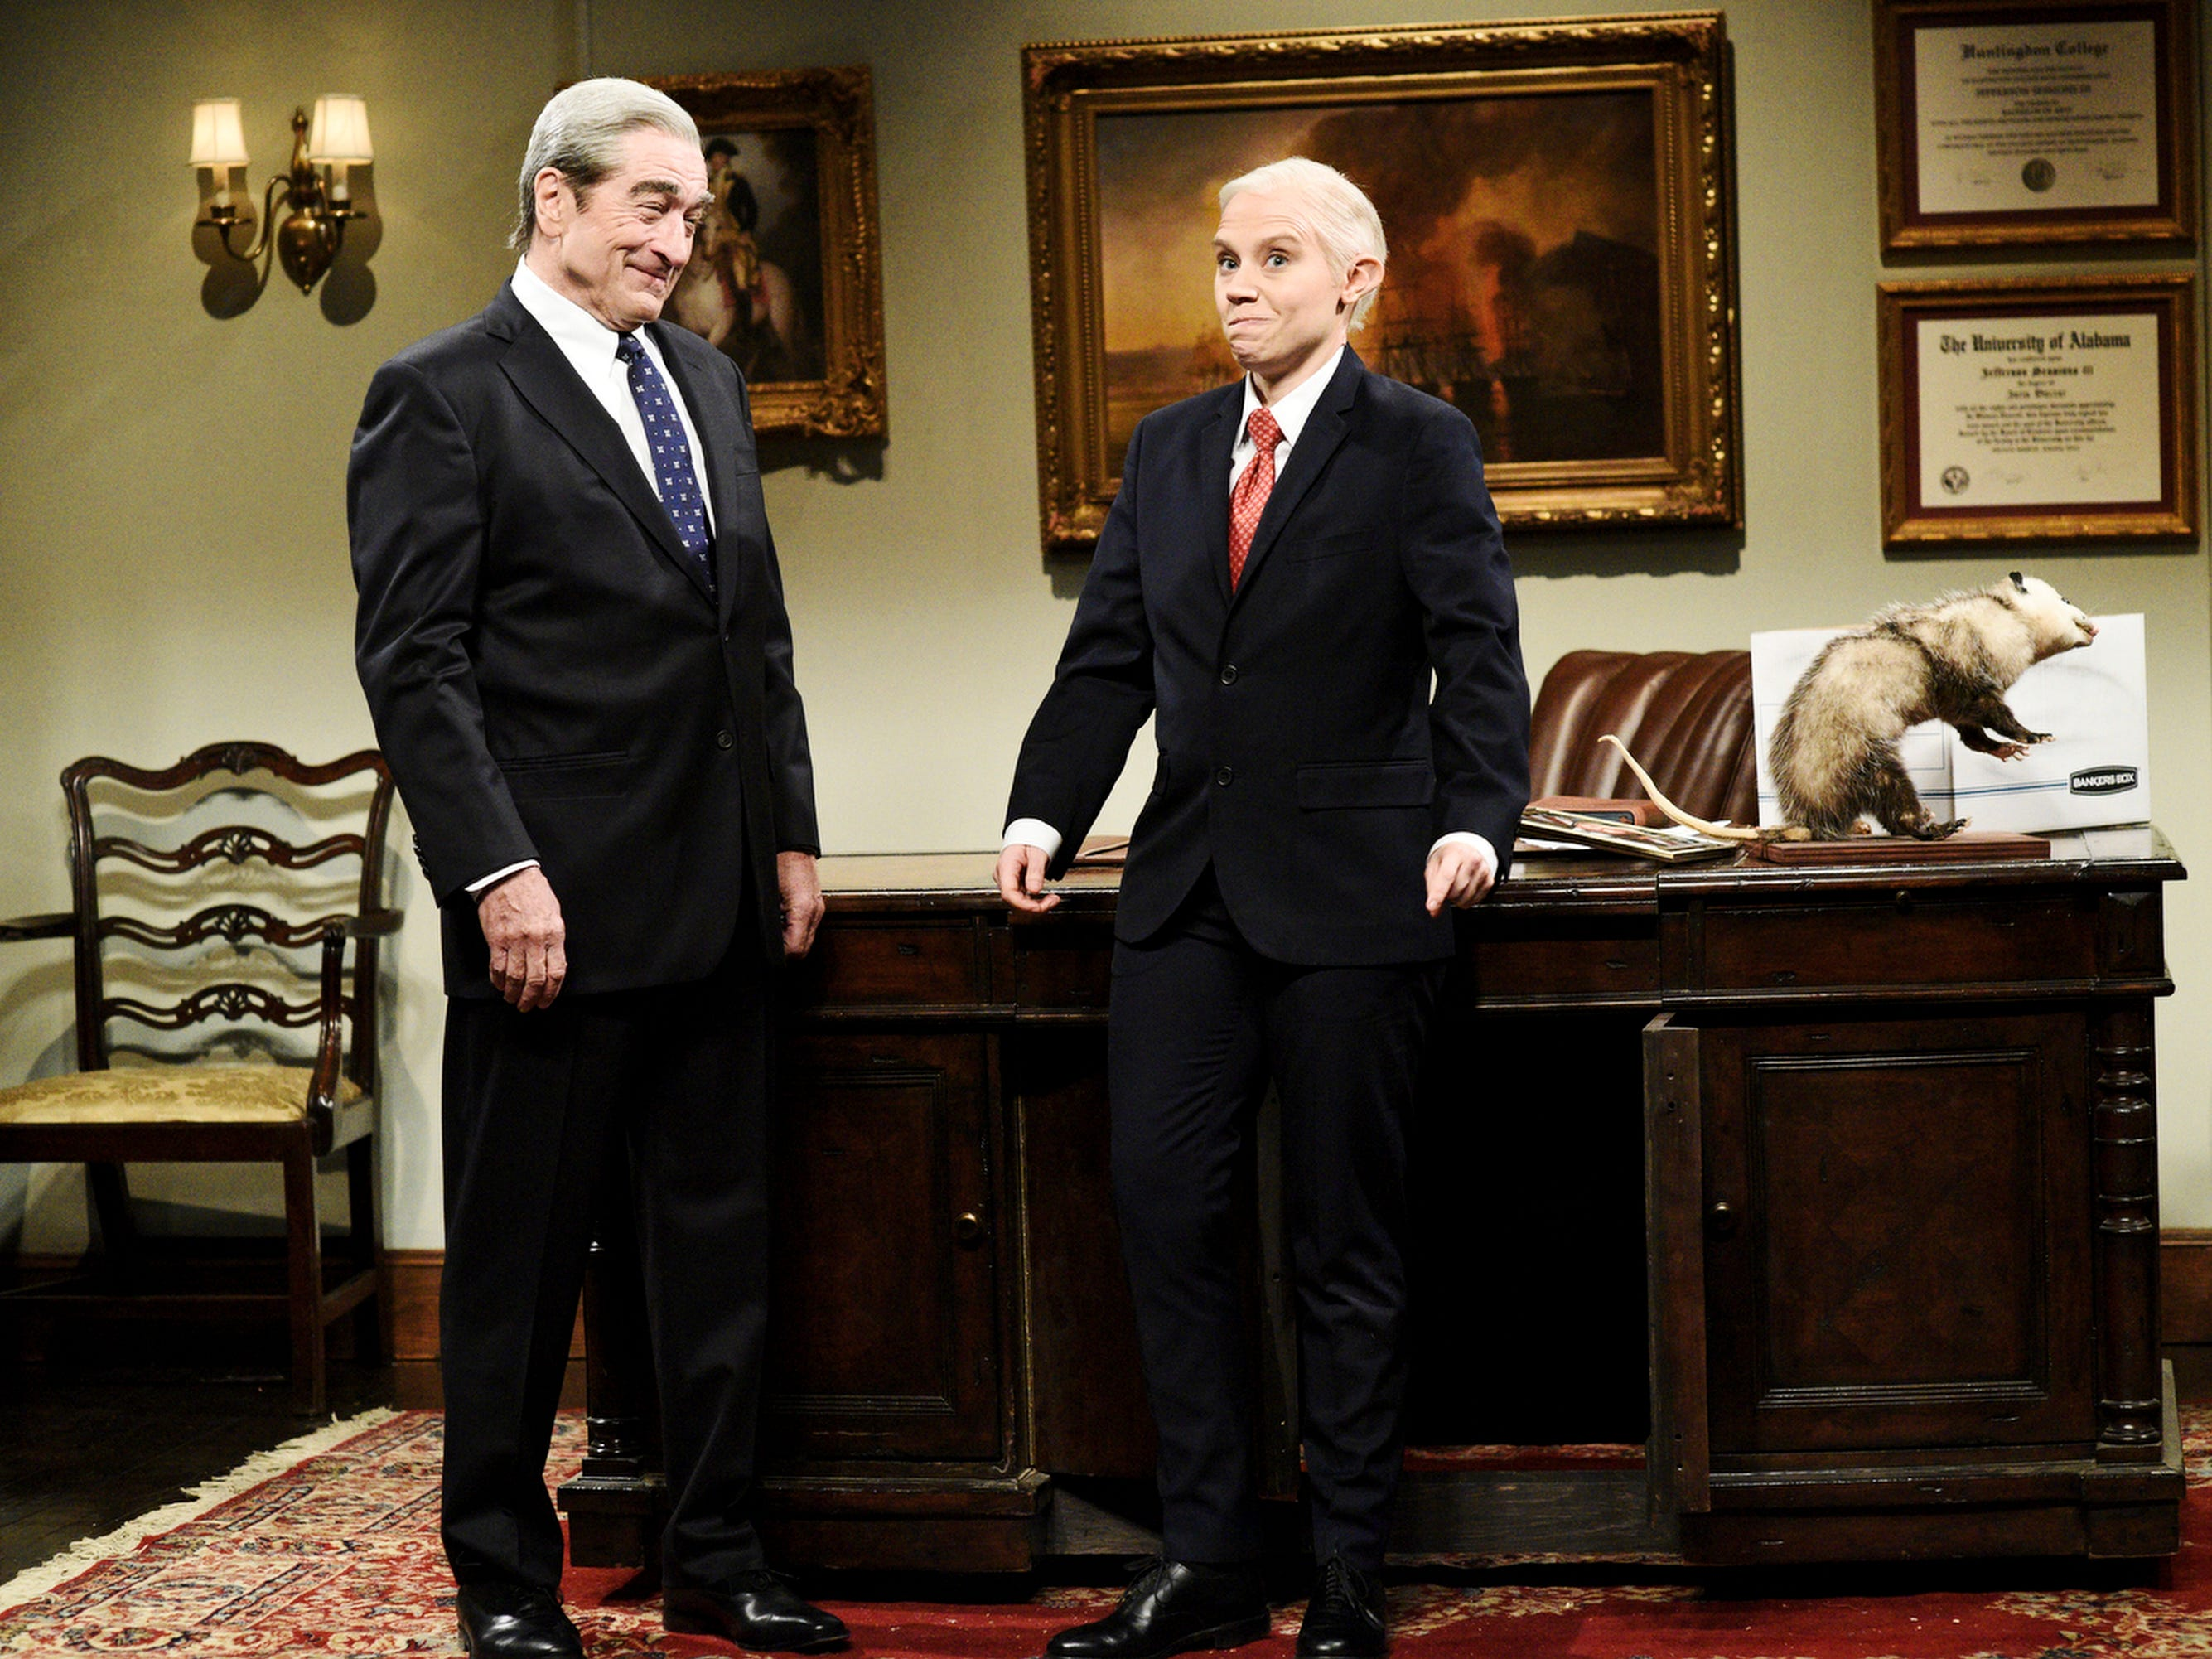 """Robert De Niro made a surprise guest appearance, reprising his role as independent counsel Robert Mueller, who came to bid farewell to ousted  Attorney General Jeff Sessions (Kate McKinnon). Mueller assured Sessions that he helped in the investigation """"more than you'll ever know,"""" before leaving him with a parting gift.""""You know in 'Harry Potter' when an elf gets a piece of clothing and it sets him free?"""" Mueller said, producing a piece of toilet paper that had been stuck to President Trump's shoe. """"This is for you."""""""